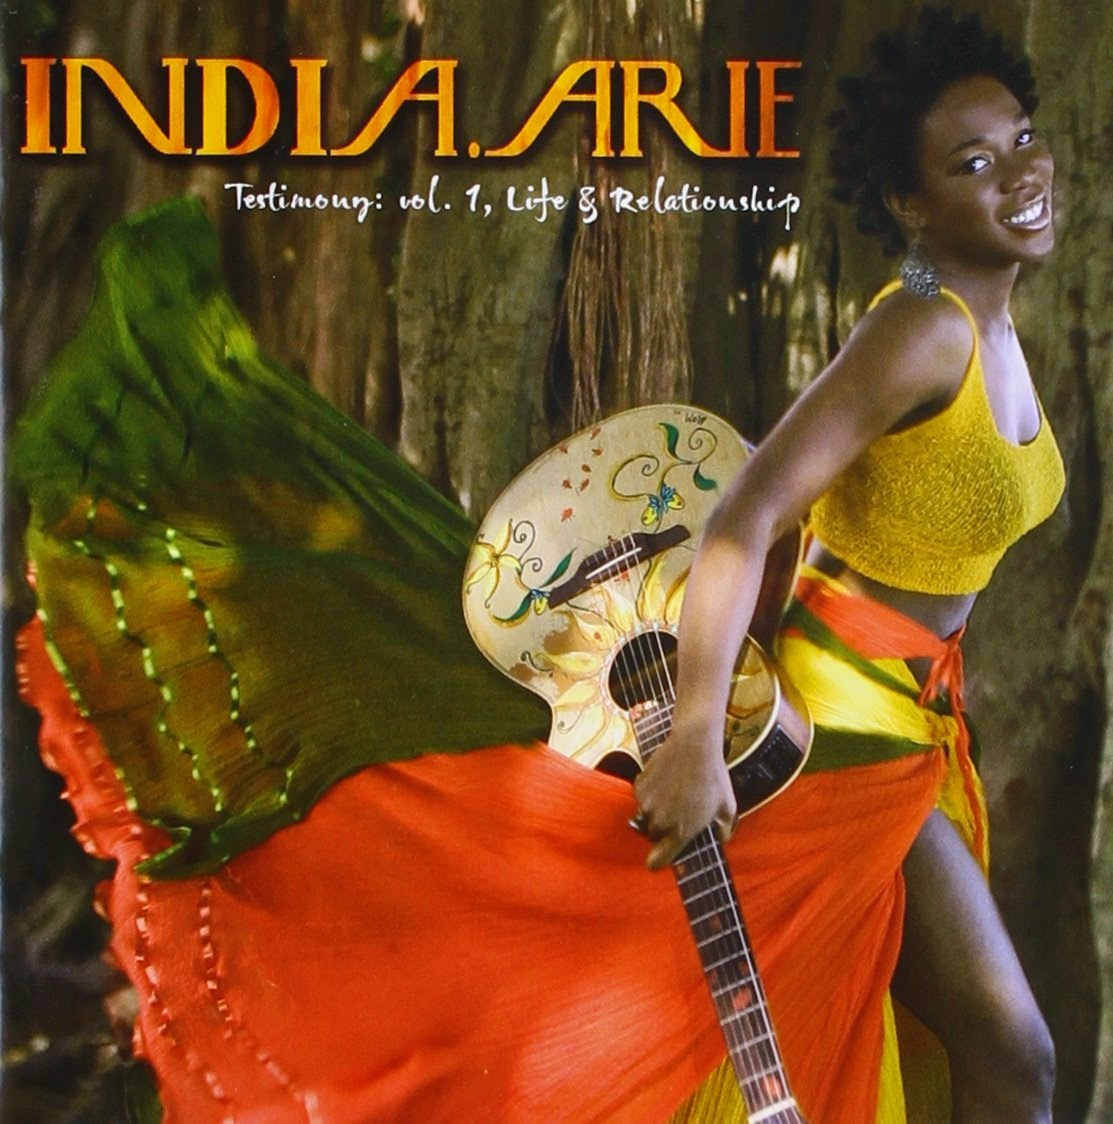 Album Reviews - Testimony: Vol. 1, Life & Relationship by India Arie